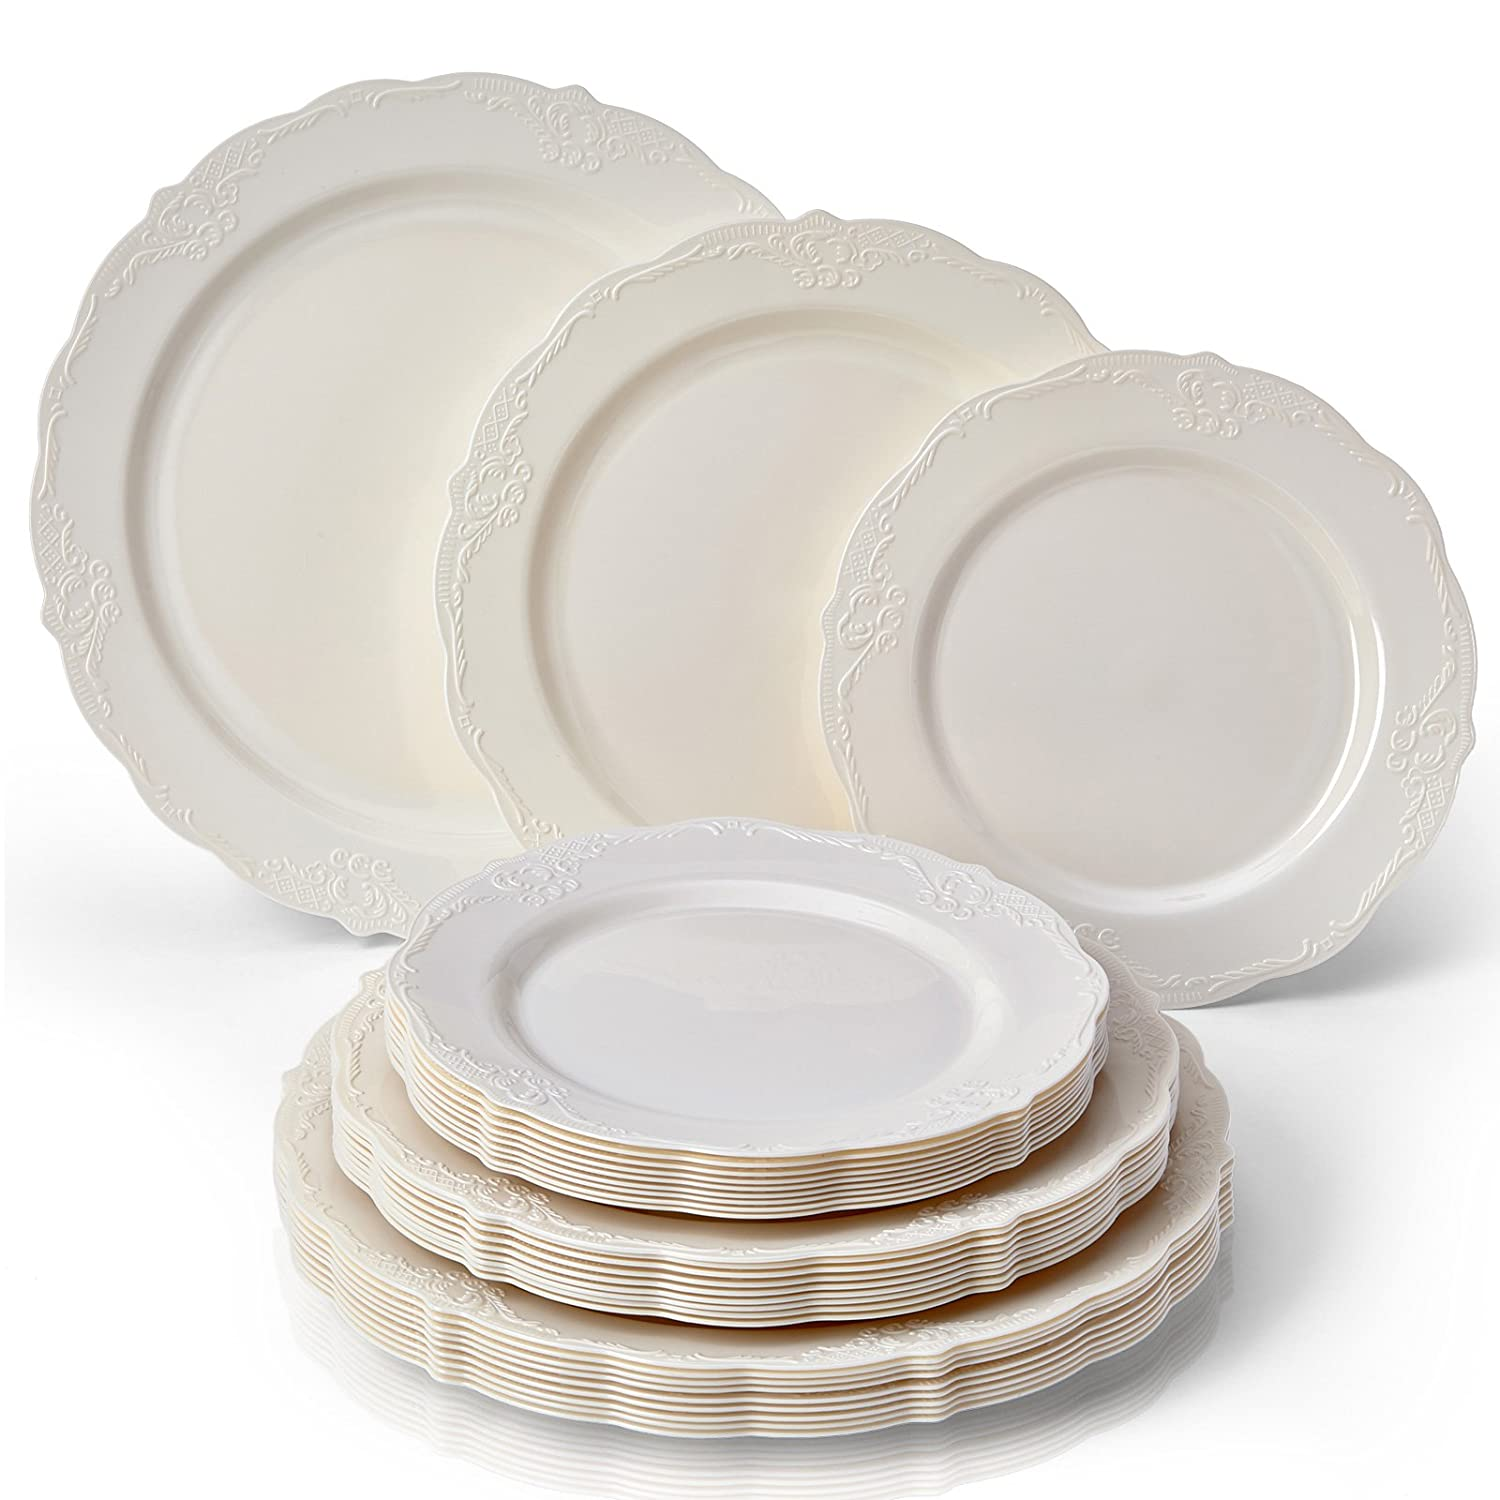 PARTY DISPOSABLE 30 PC DINNERWARE SET | 10 Dinner Plates | 10 Salad Plates | 10 Dessert Plates | Heavyweight Plastic Dishes | Fine China Look | Upscale Wedding and Dining (Vintage Collection - Cream)